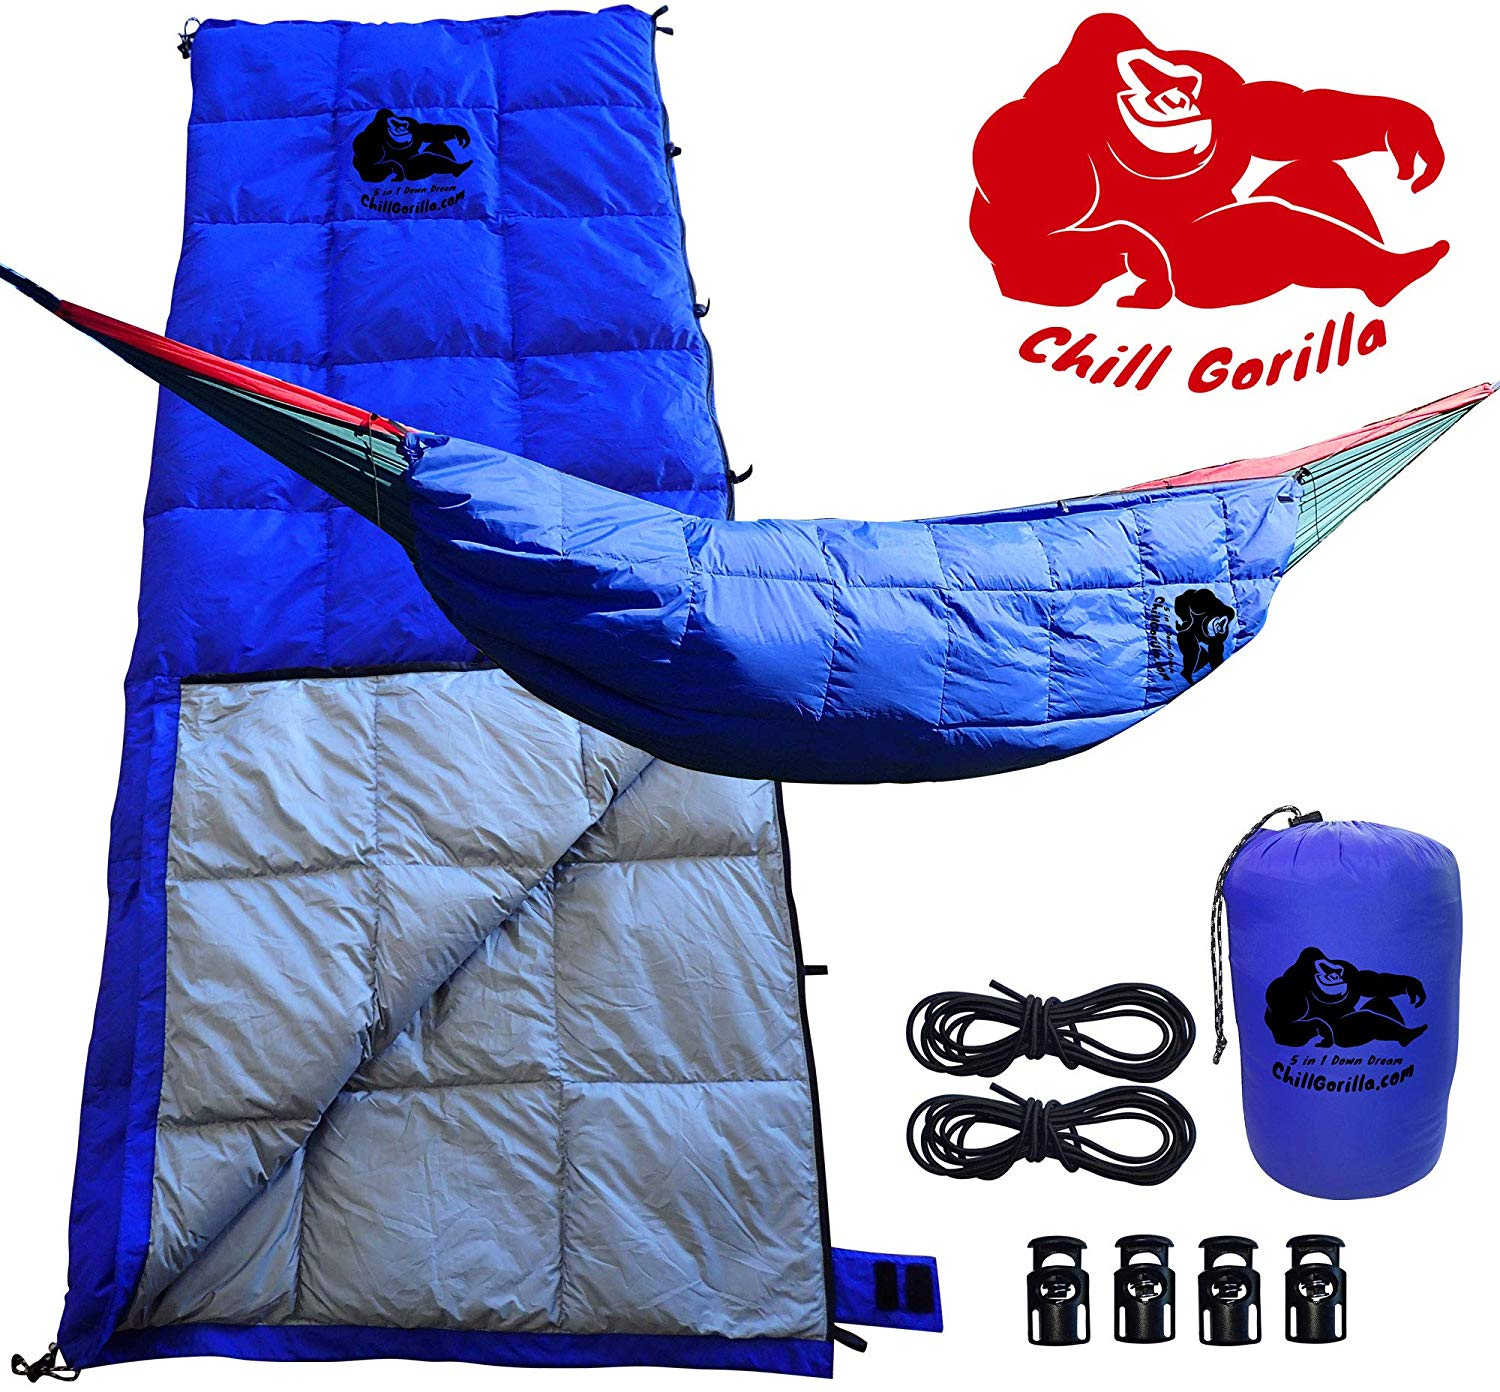 Chill Gorilla 30°F Down UNDERQUILT, Sleeping Bag, POD System for Hammock